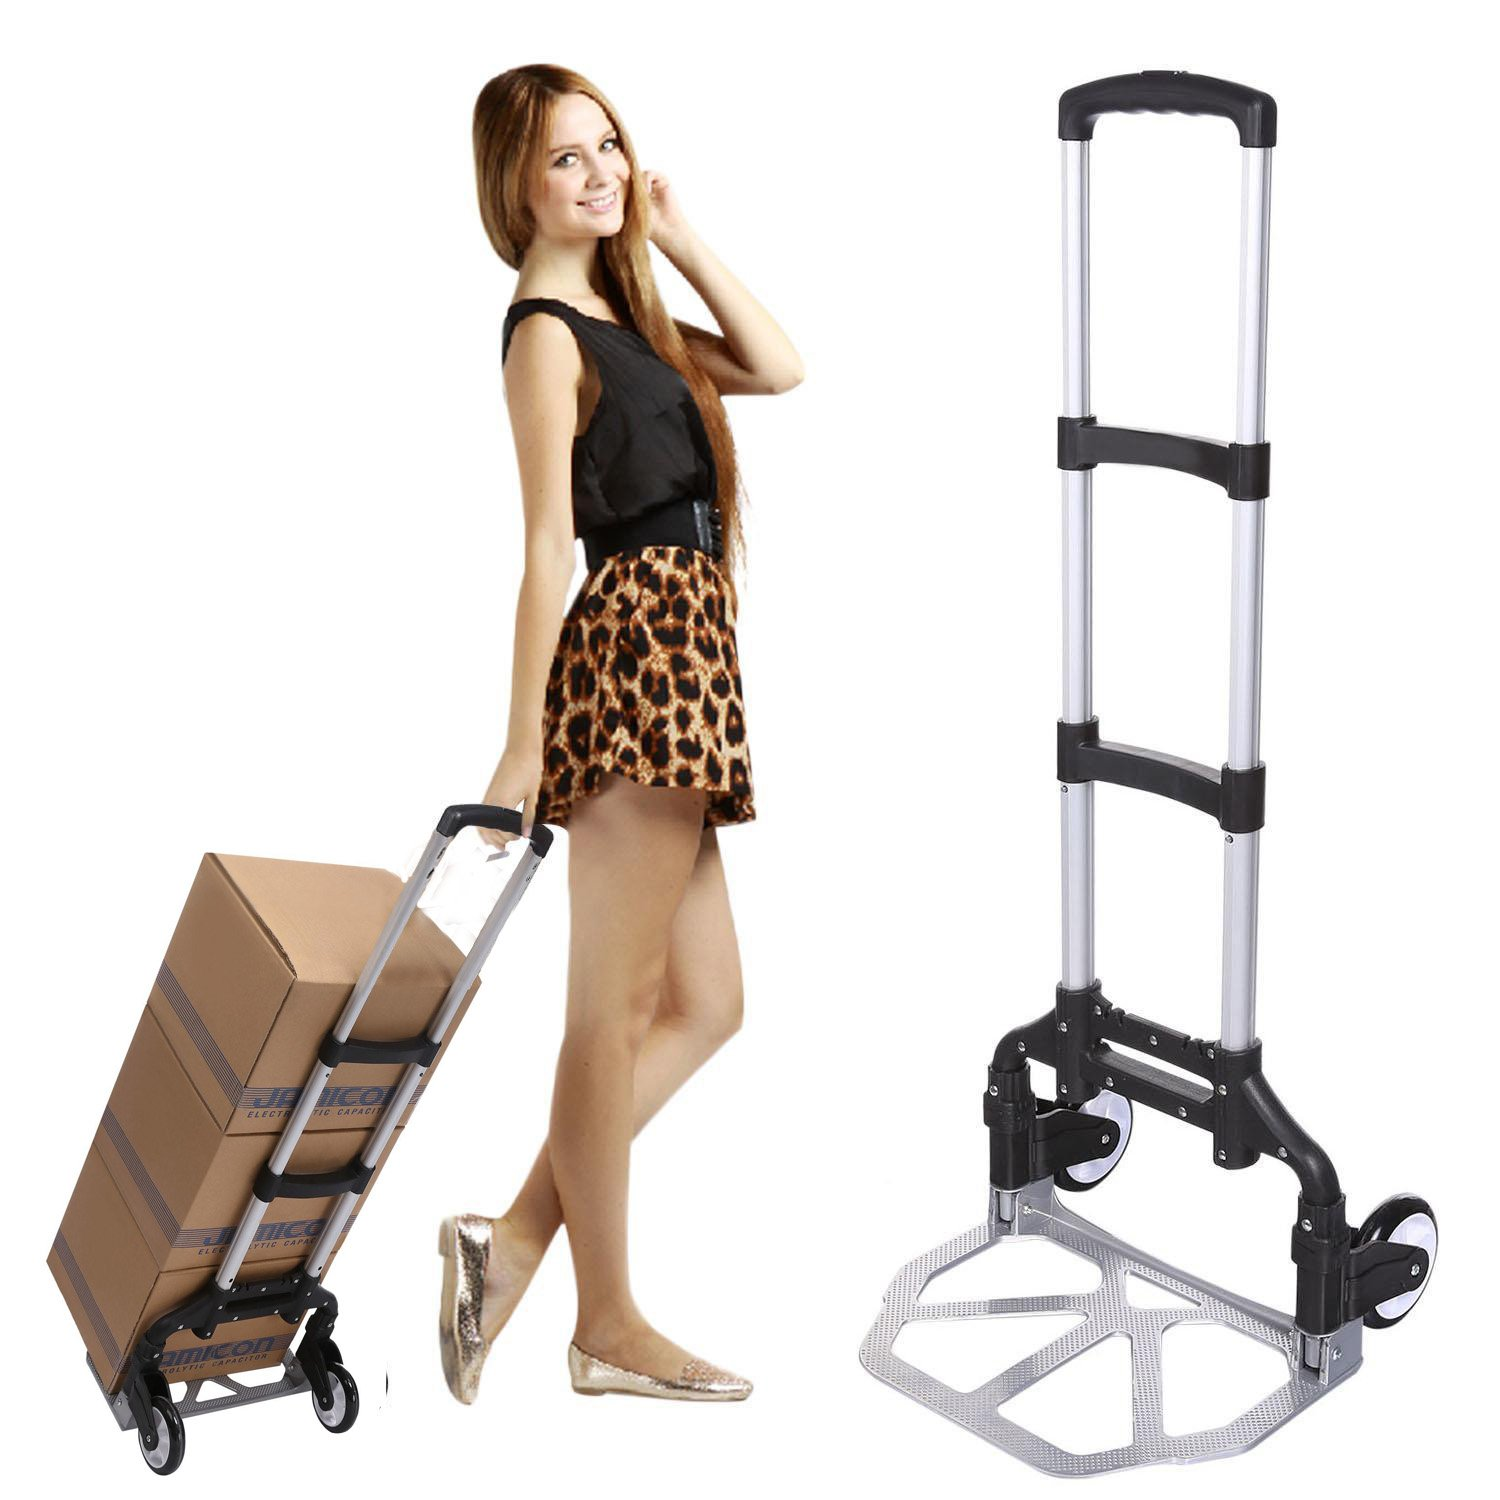 (US Stock) Keland Foldable Lightweight Hand Truck, Portable Aluminum Small Hand Trucks,150lbs Capacity Mini Hand Truck with Arm Handle for Industrial/Travel/Shopping